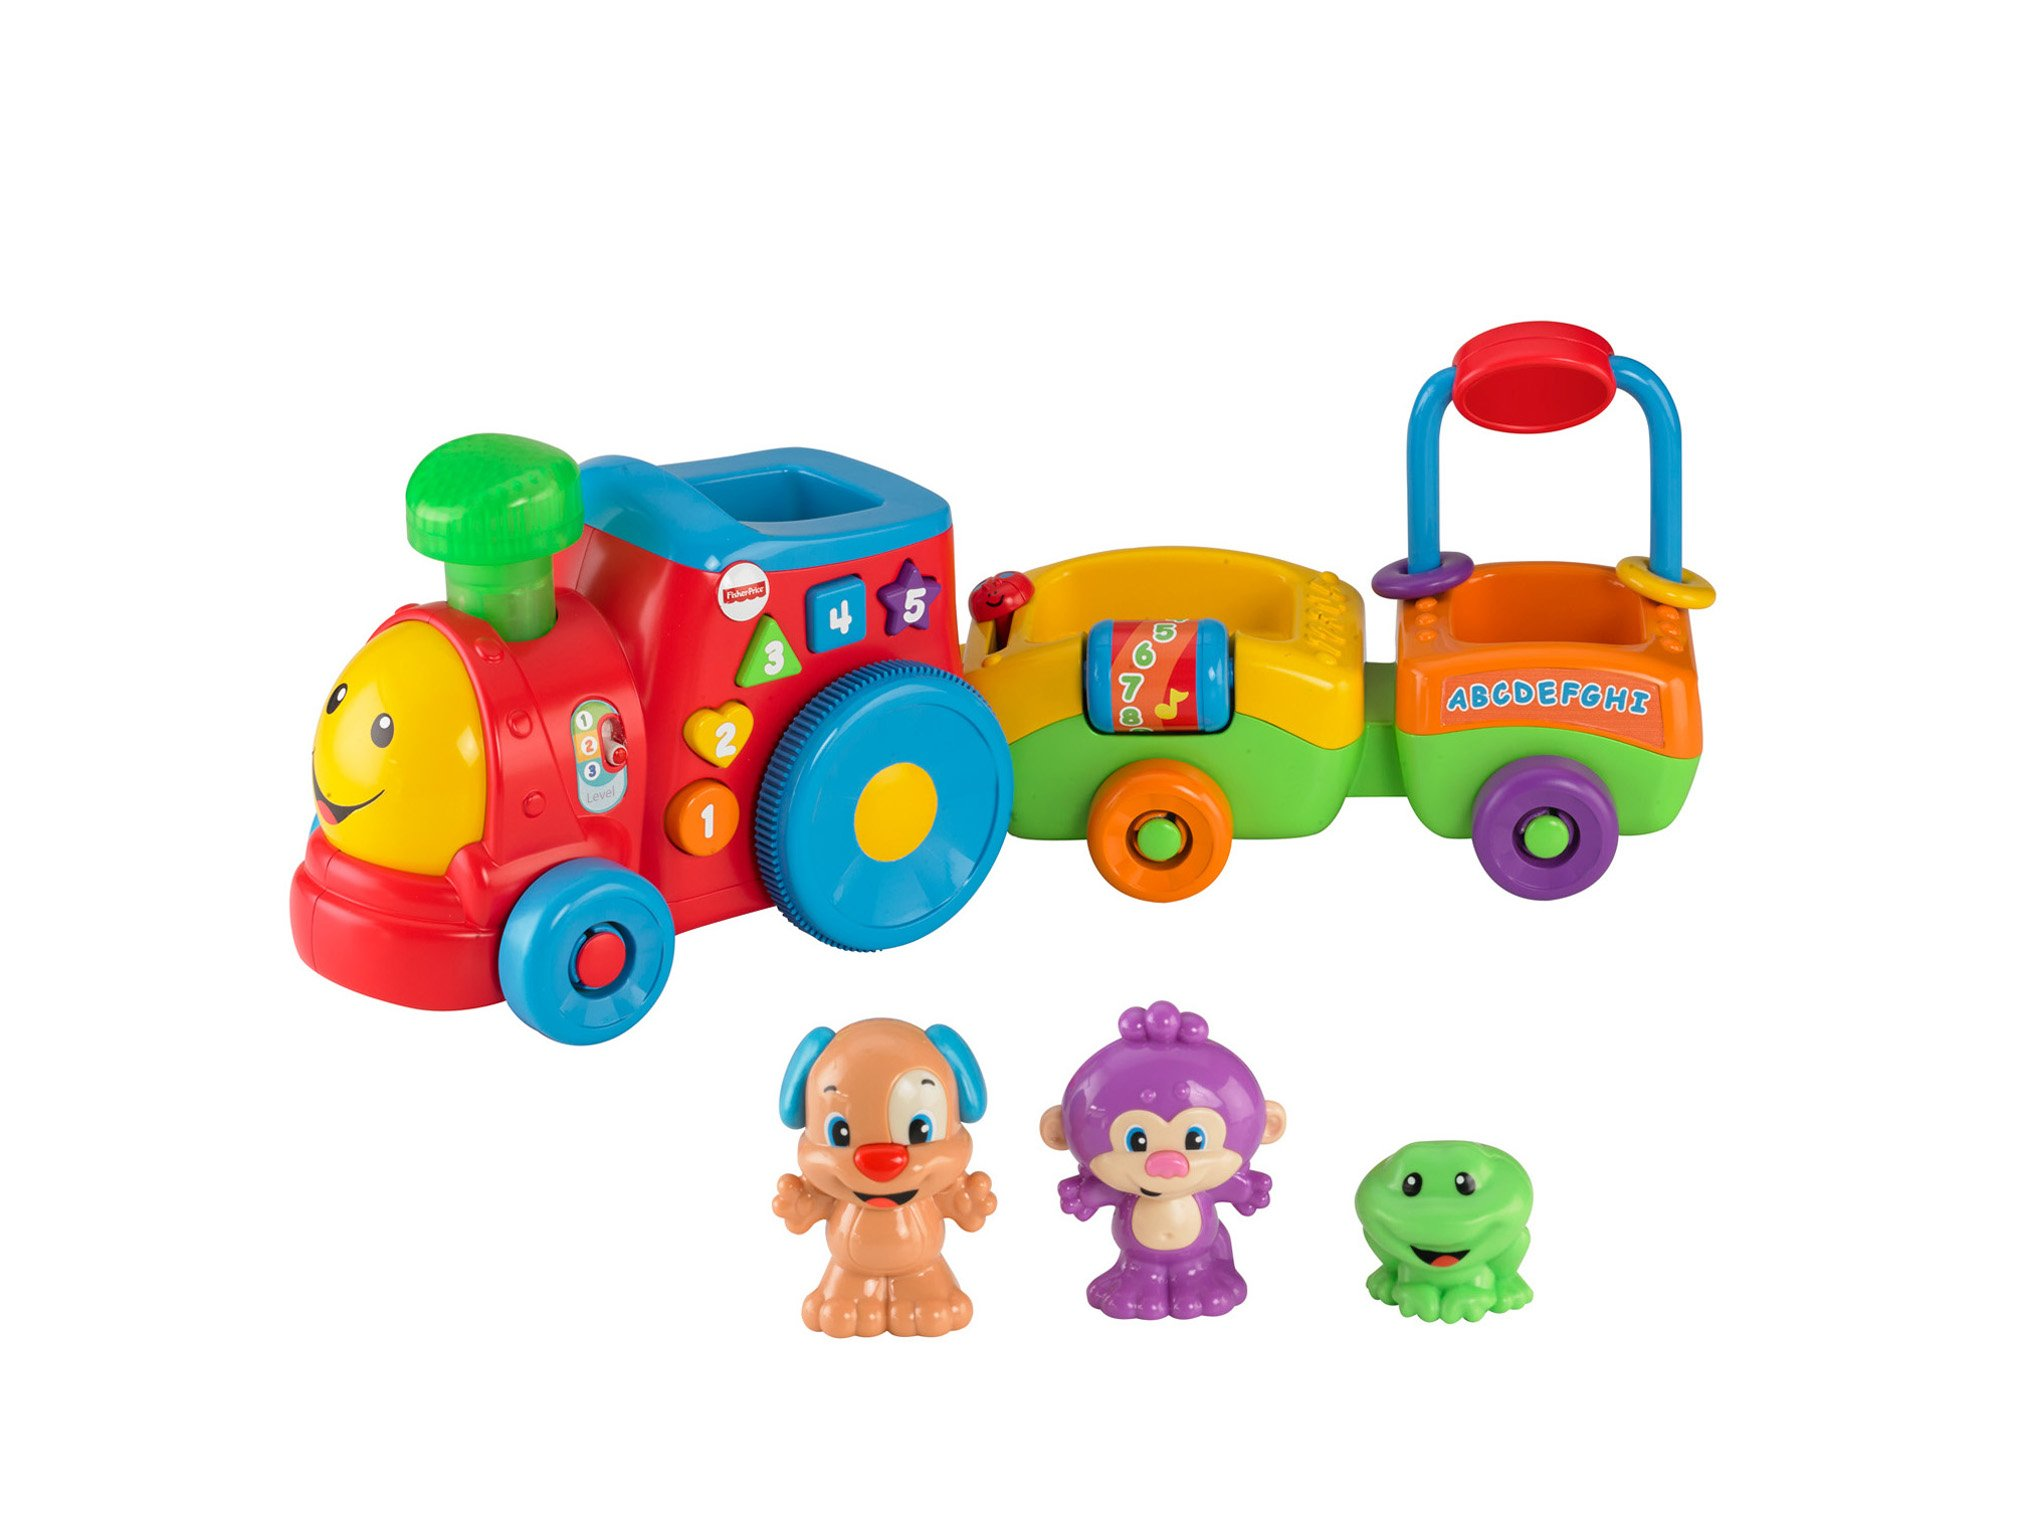 Fisher-Price Laugh & Learn Smart Stages Puppy's Smart Train